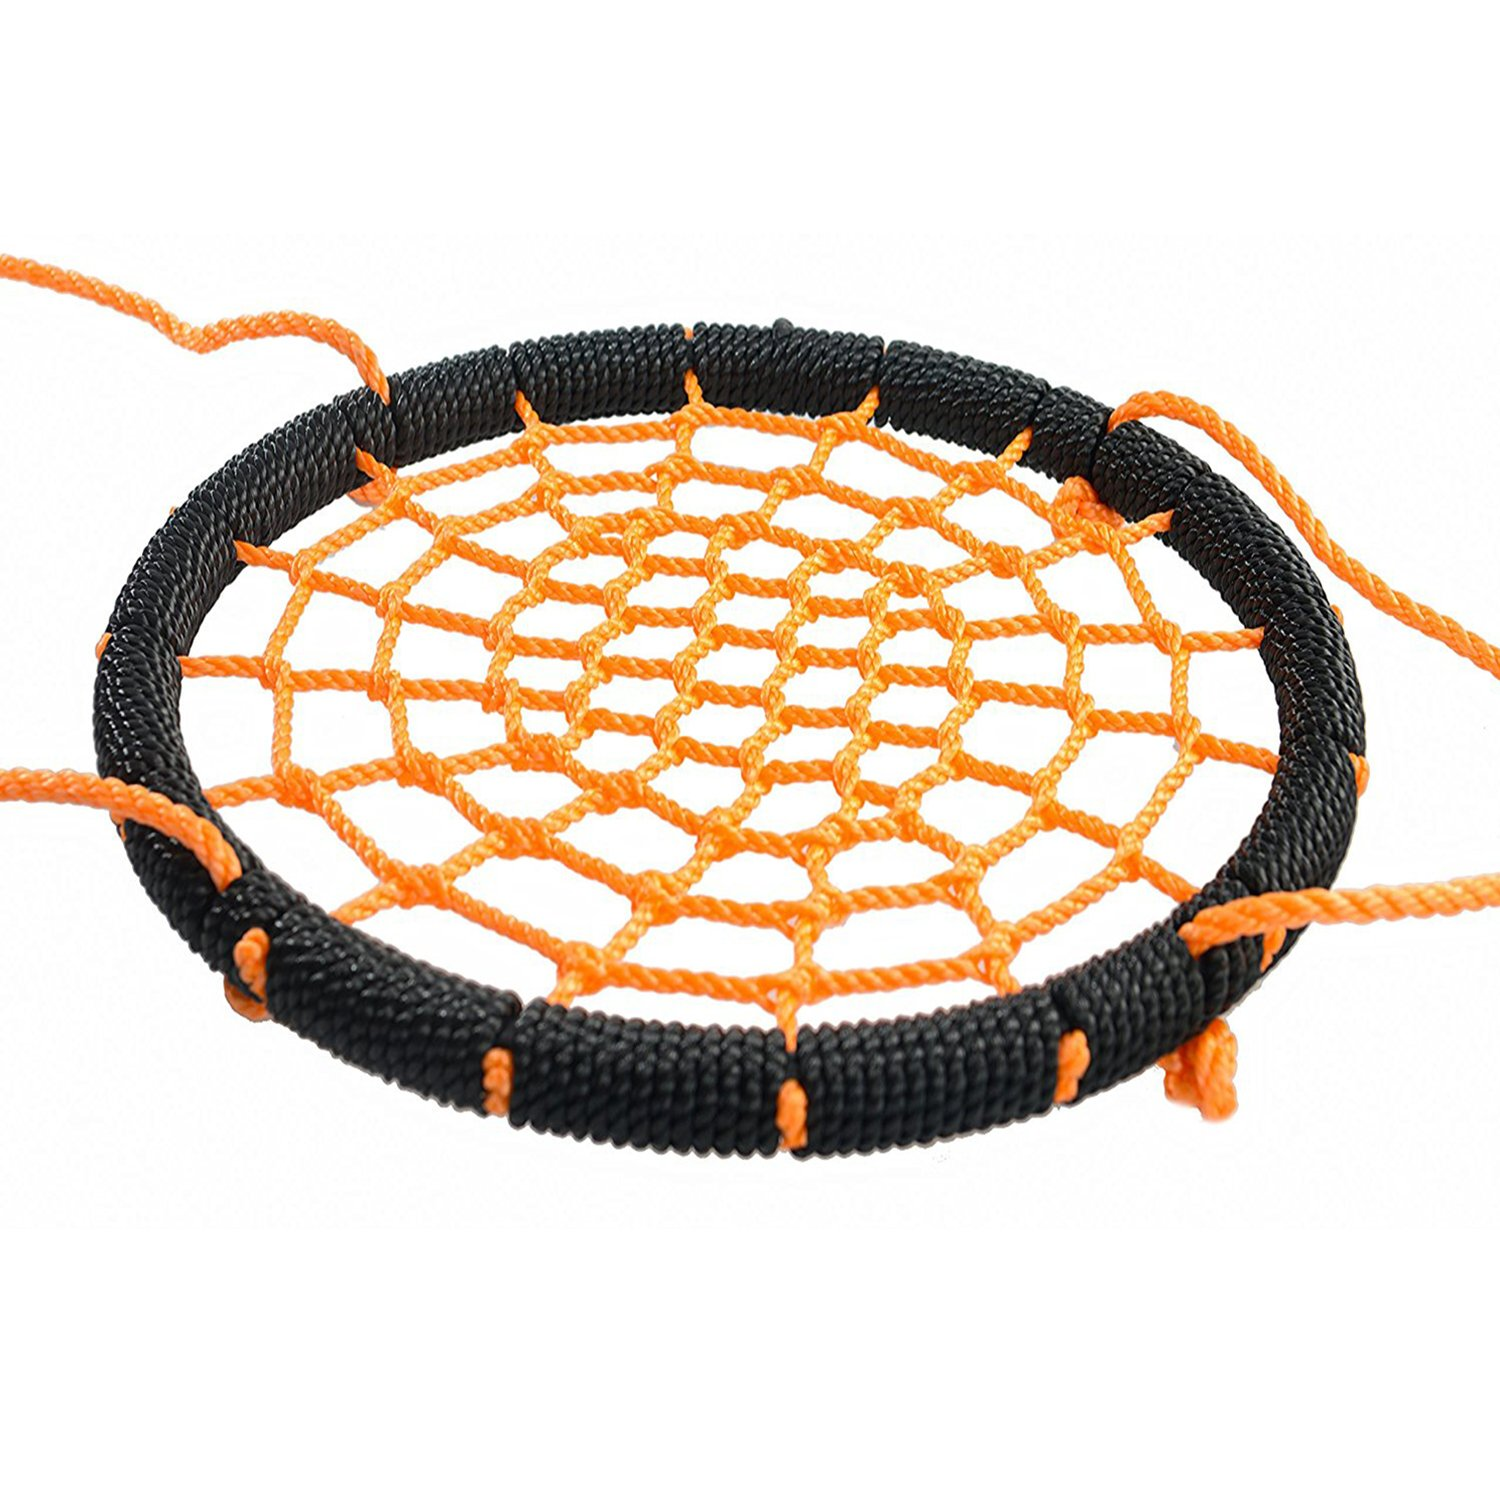 Outroad Web Swing - Great for Tree, Playground, Playroom - 24 Inch Outdoor Spider Net Swing for Kids, Orange, with 2 Extra 60 inch Hanging Straps by OUTROAD OUTDOOR CAMPING GARDEN PATIO (Image #3)